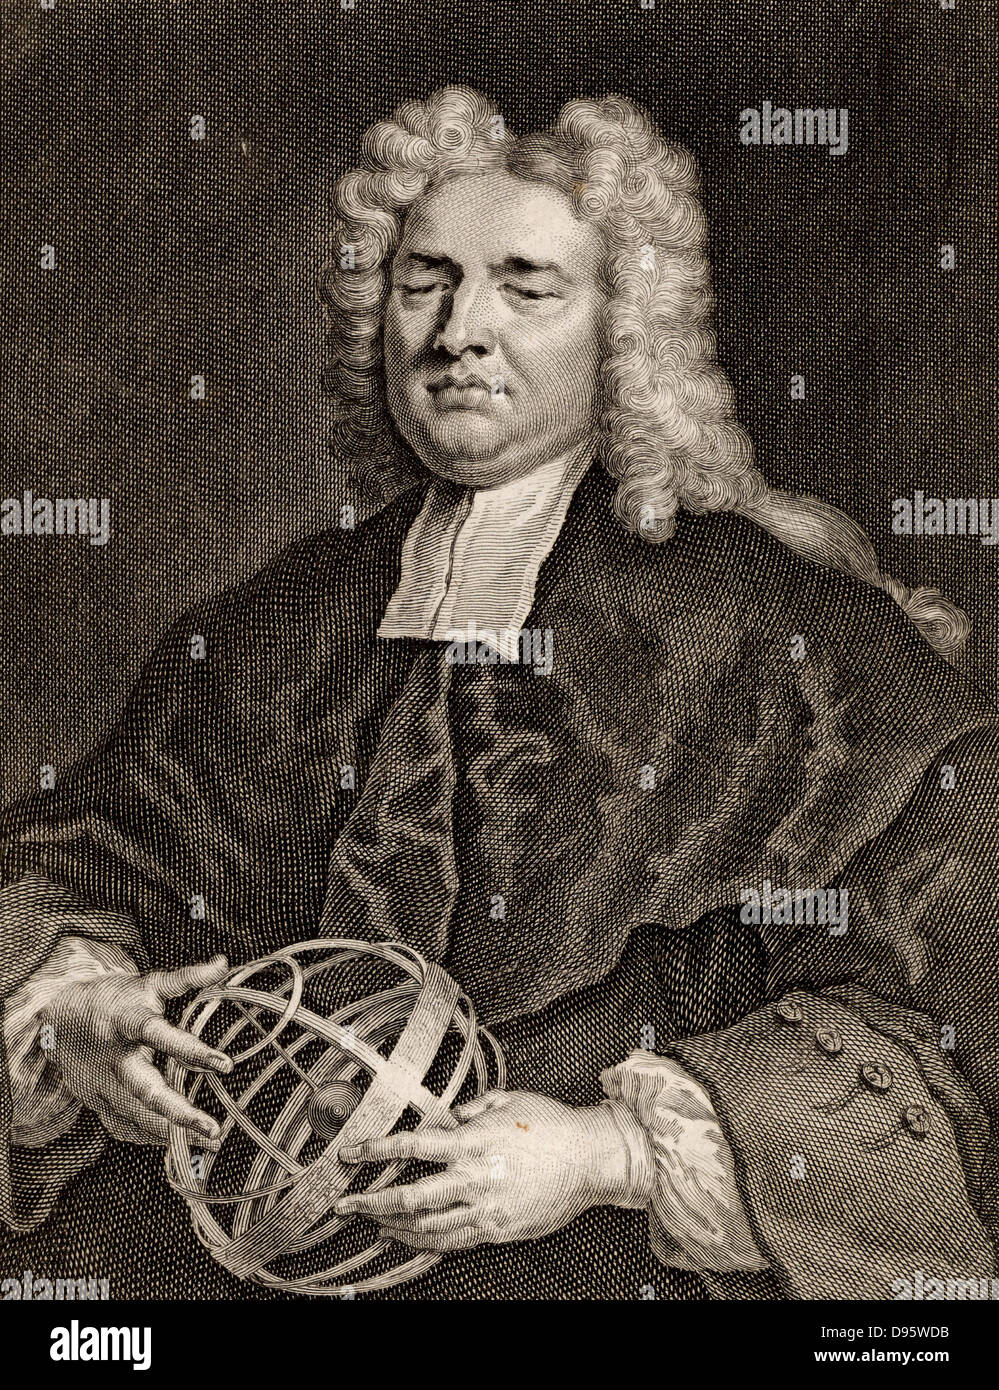 Nicholas Saunderson (1682-1739), English mathematician. Saunderson lost his sight to Smallpox when he was an infant. - Stock Image